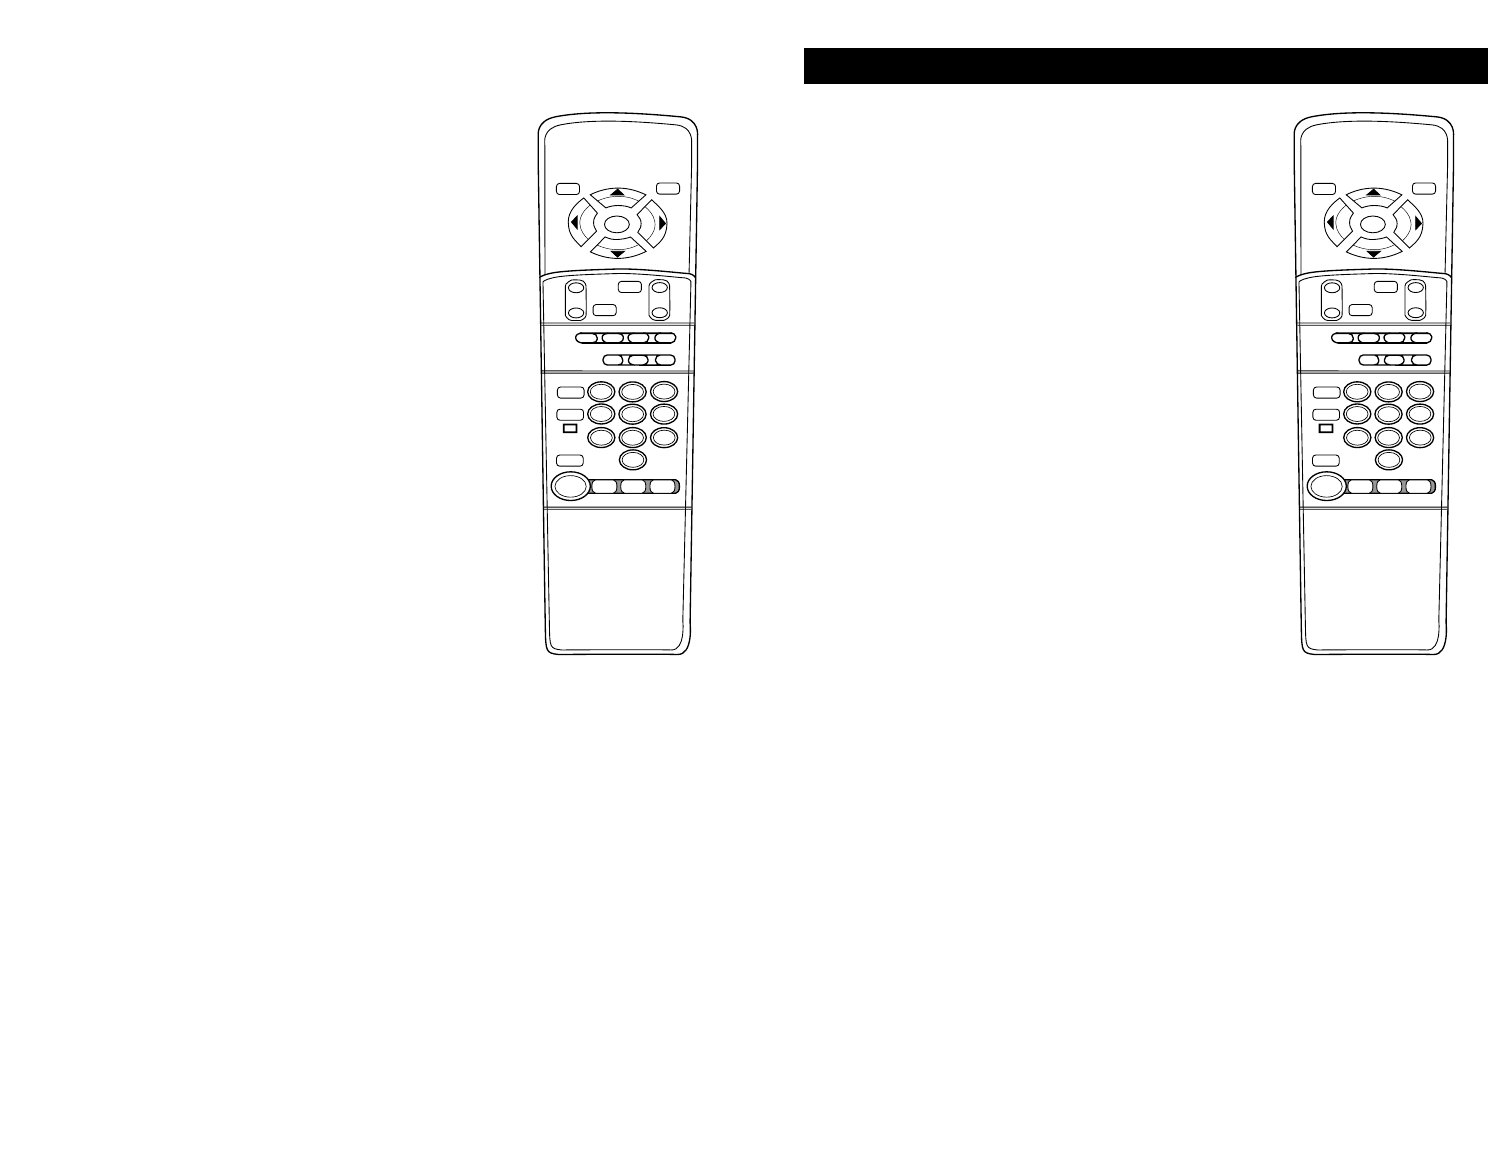 philips universal remote cl035a manual pdf